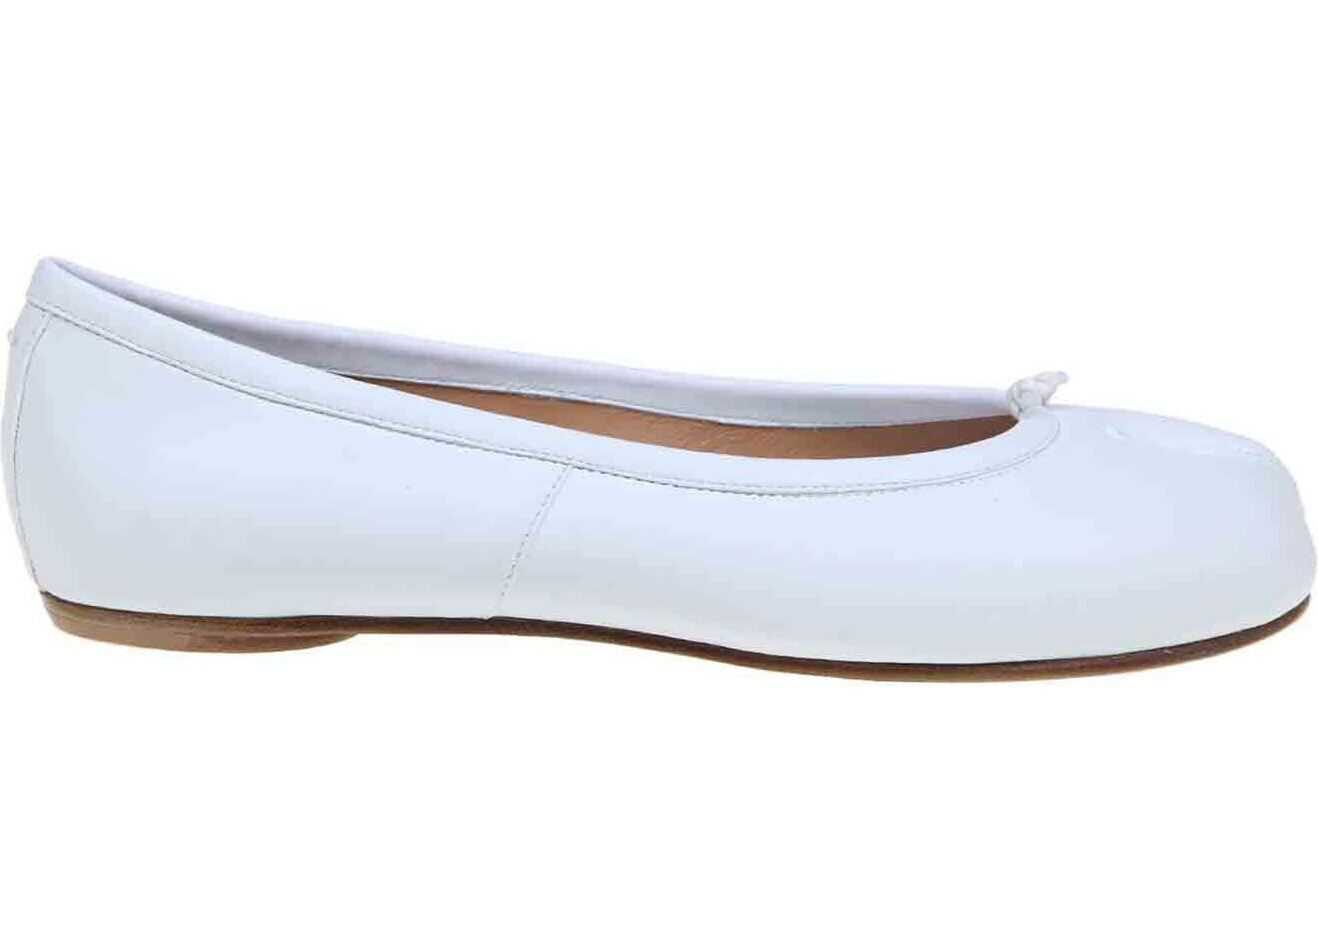 Tabi Ballerinas In White thumbnail